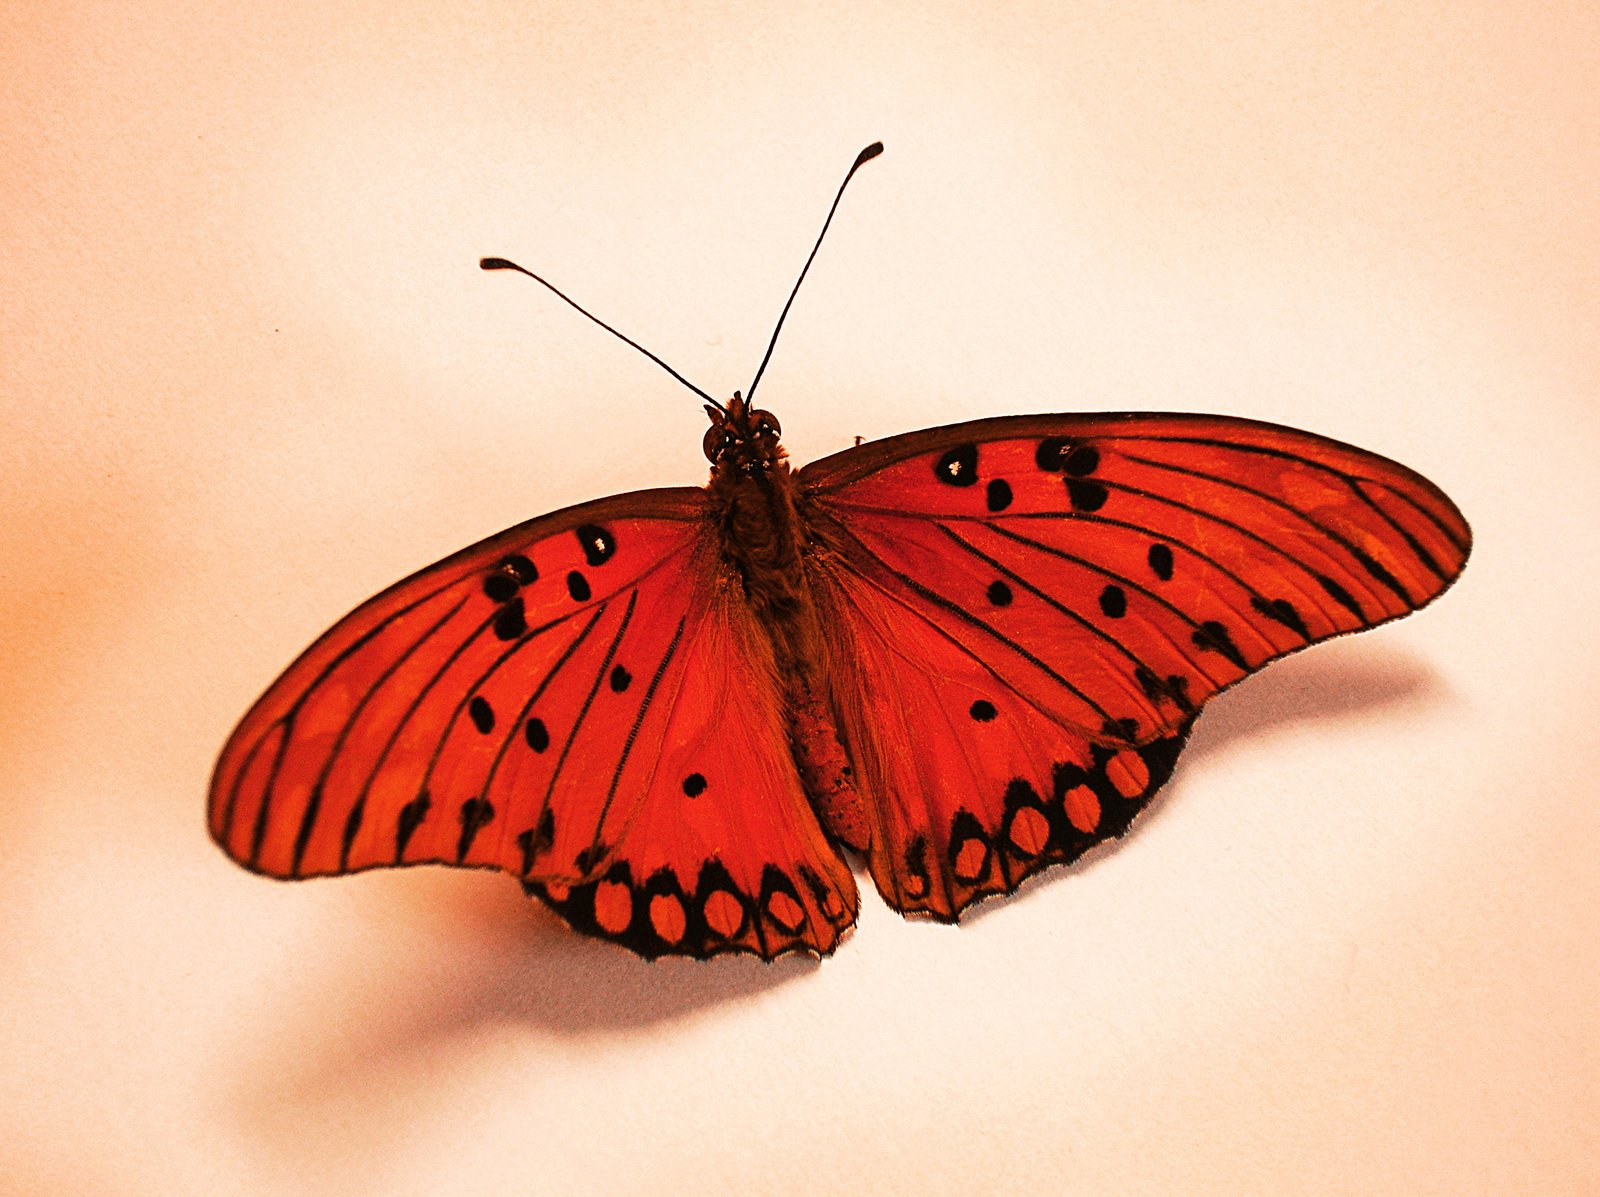 free red butterfly stock photo. Black Bedroom Furniture Sets. Home Design Ideas